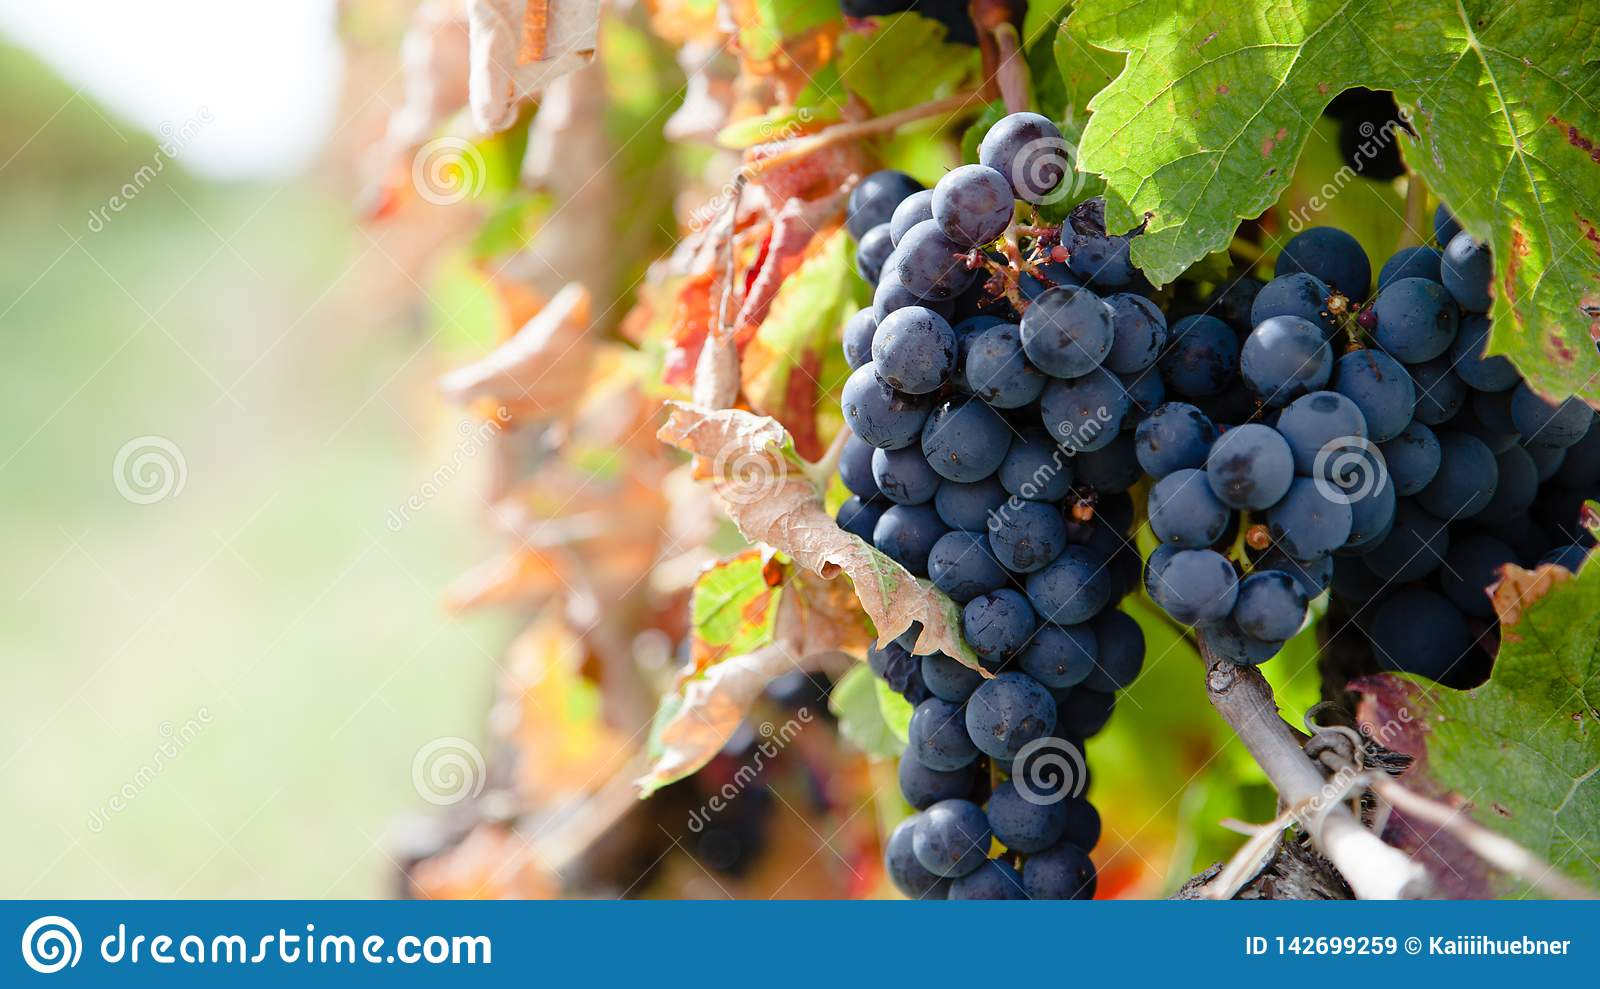 Close up on red grapes in a vineyard in late summer short before harvest.